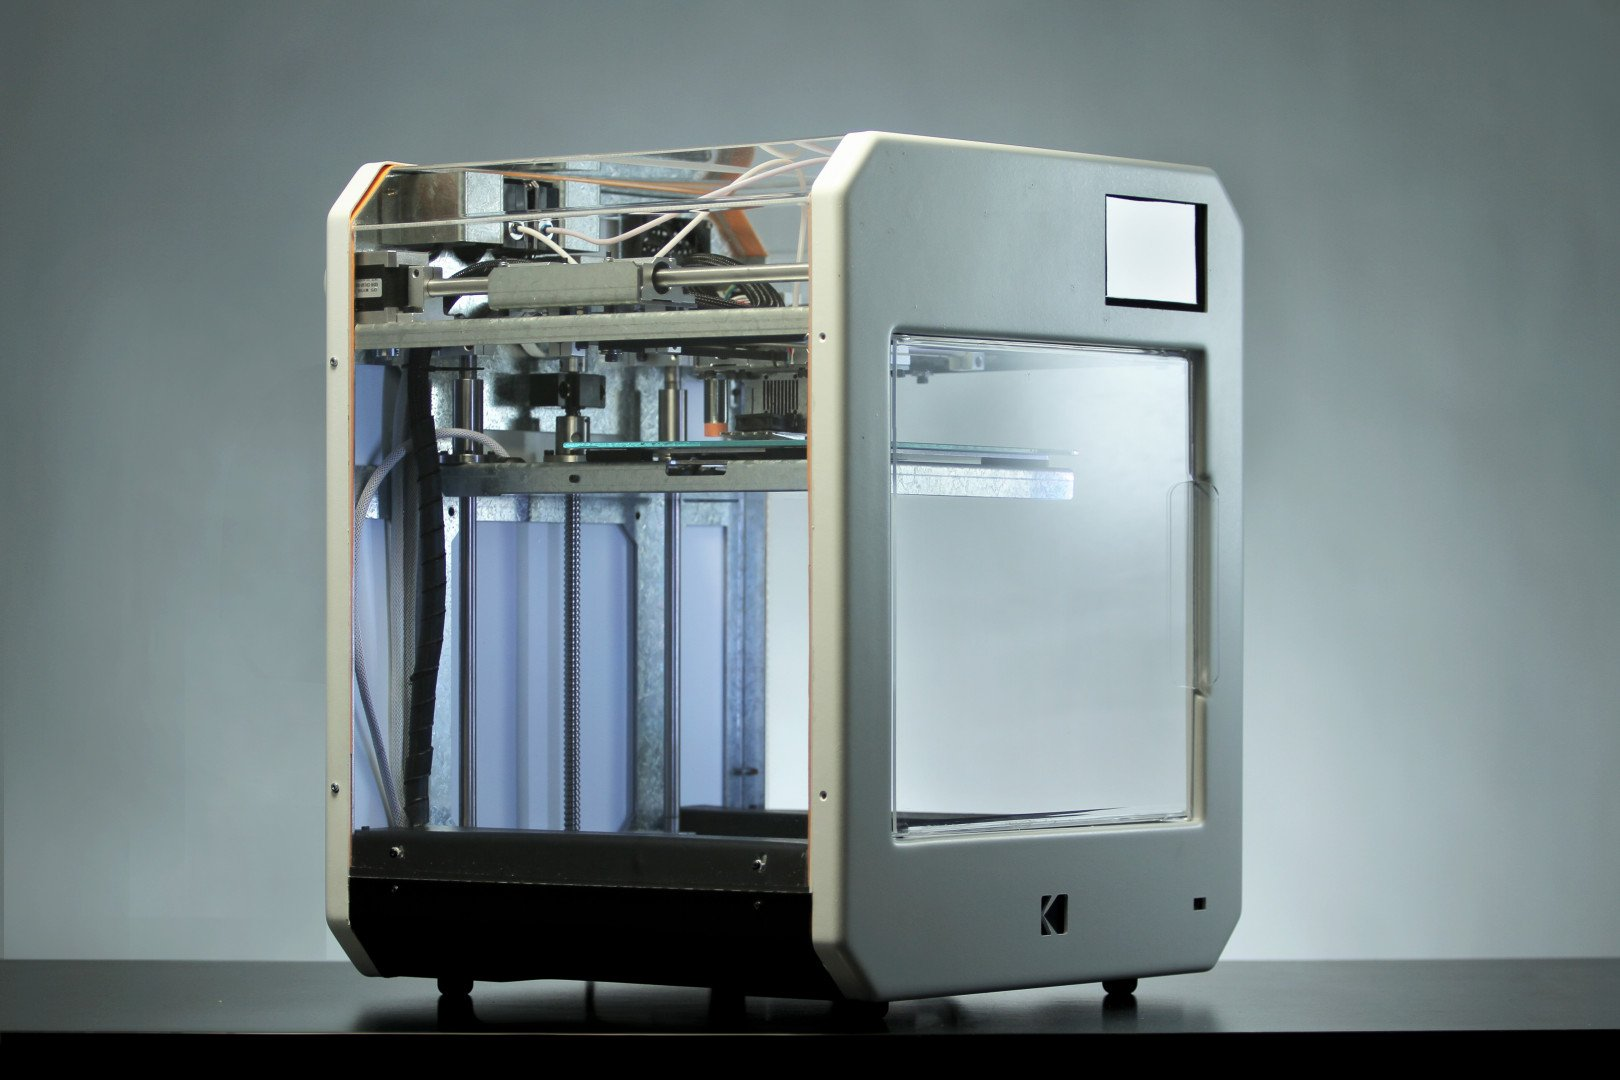 Kodak celebrates 130th Anniversary with Launch of New 3D Printing Ecosystem at CES | All3DP